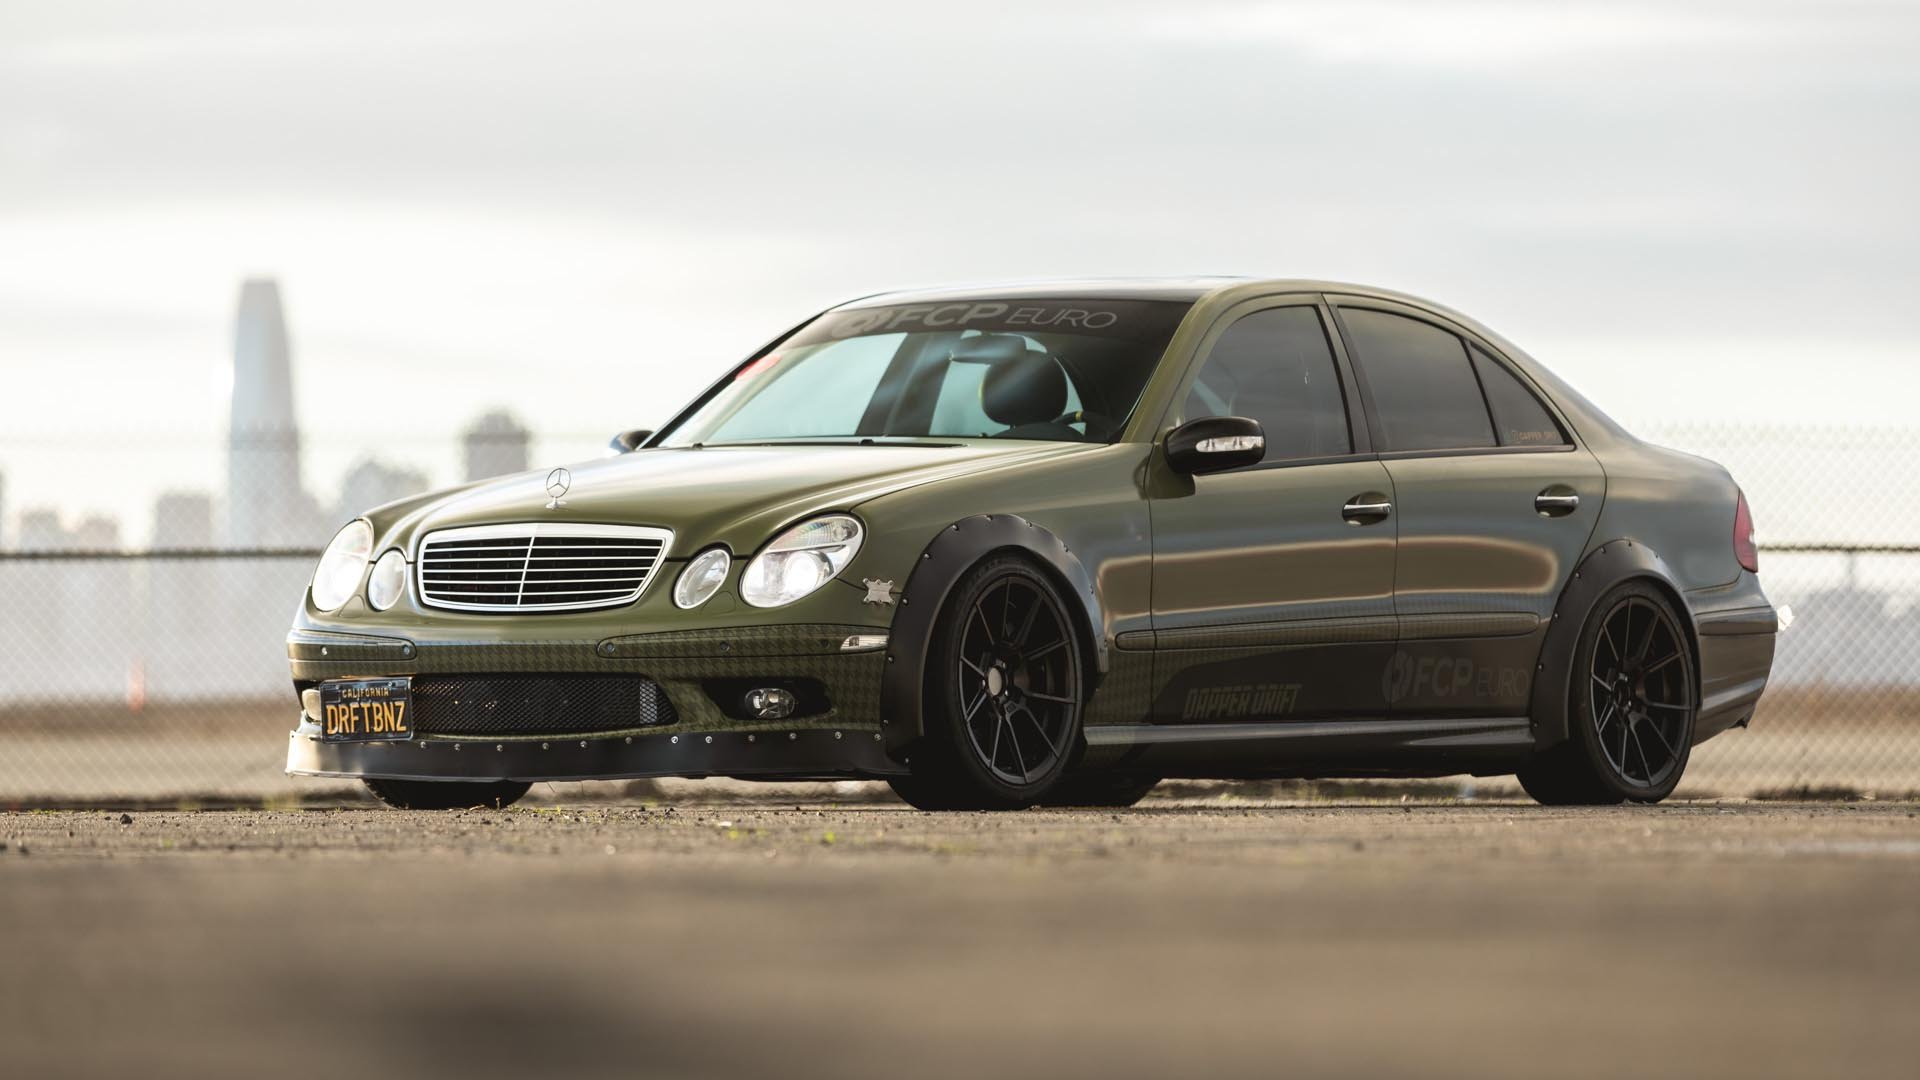 Our 'Dapper Drift' Mercedes-Benz E55 AMG Is Featured On Speedhunters